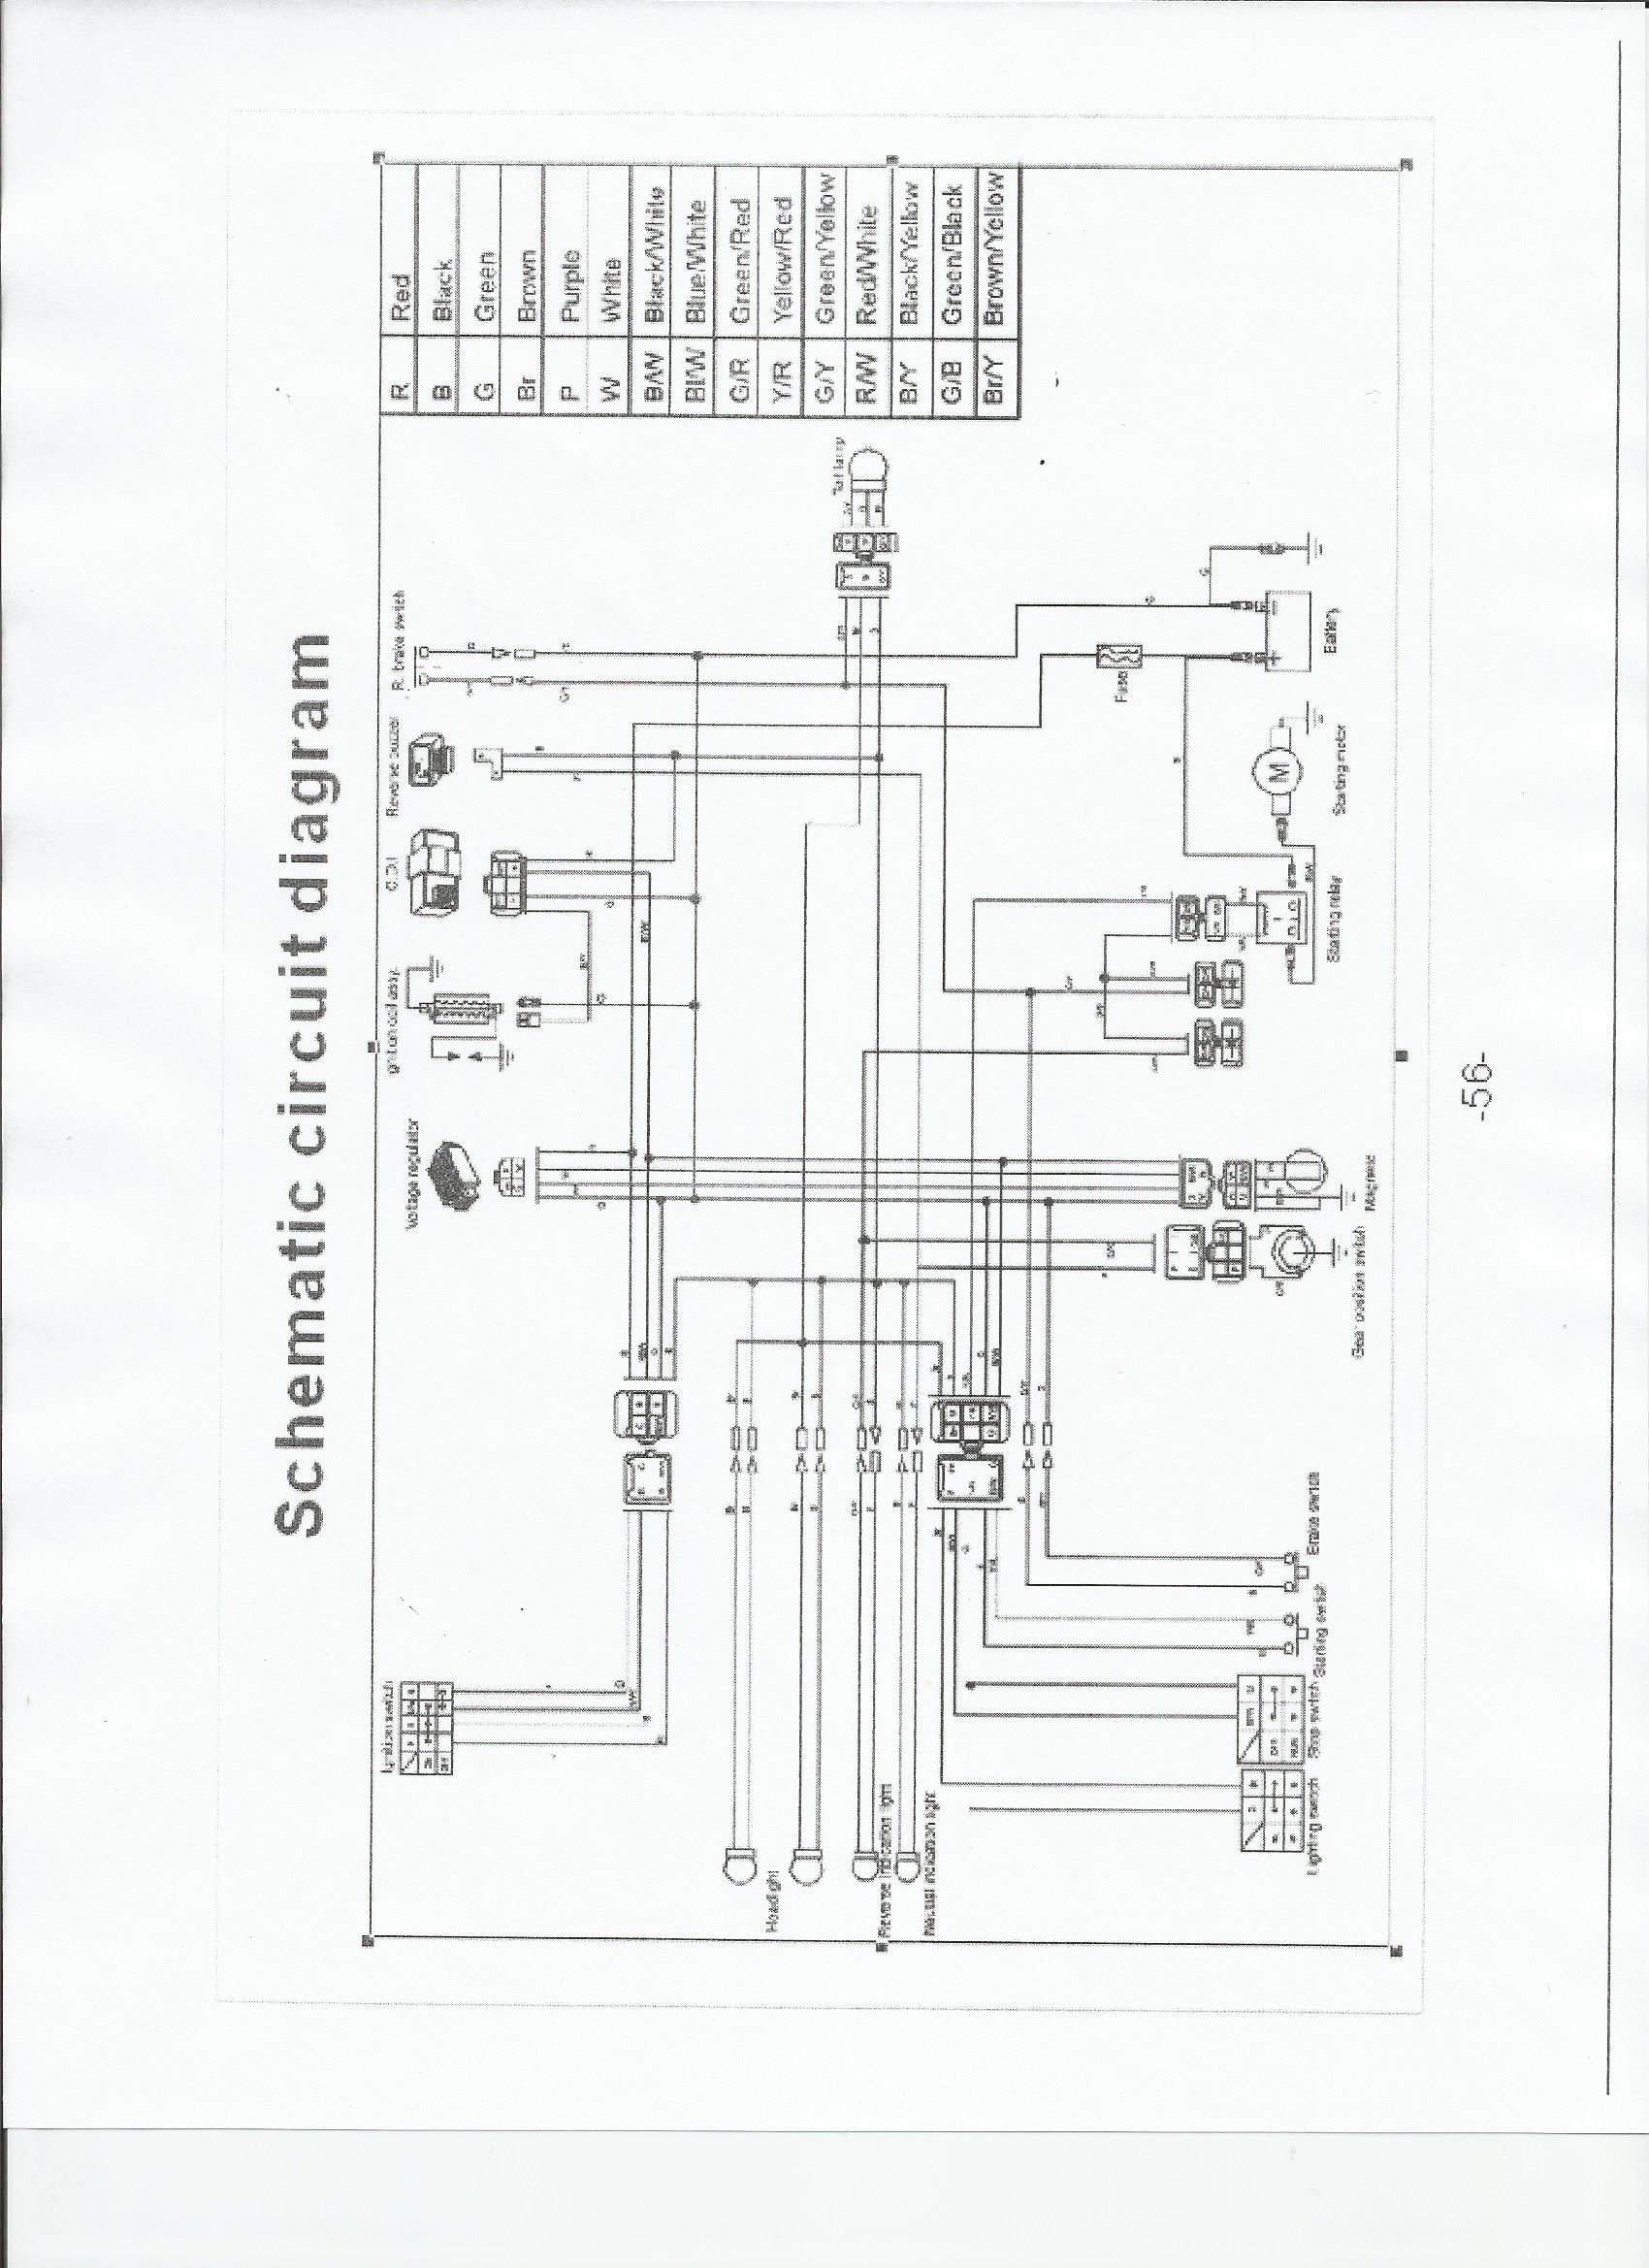 taotao mini and youth atv wiring schematic familygokarts support rh support familygokarts com Tao Tao 125Cc 4 Wheeler Wiring Diagram Wiring Diagram for Tao Tao 110Cc 4 Wheeler